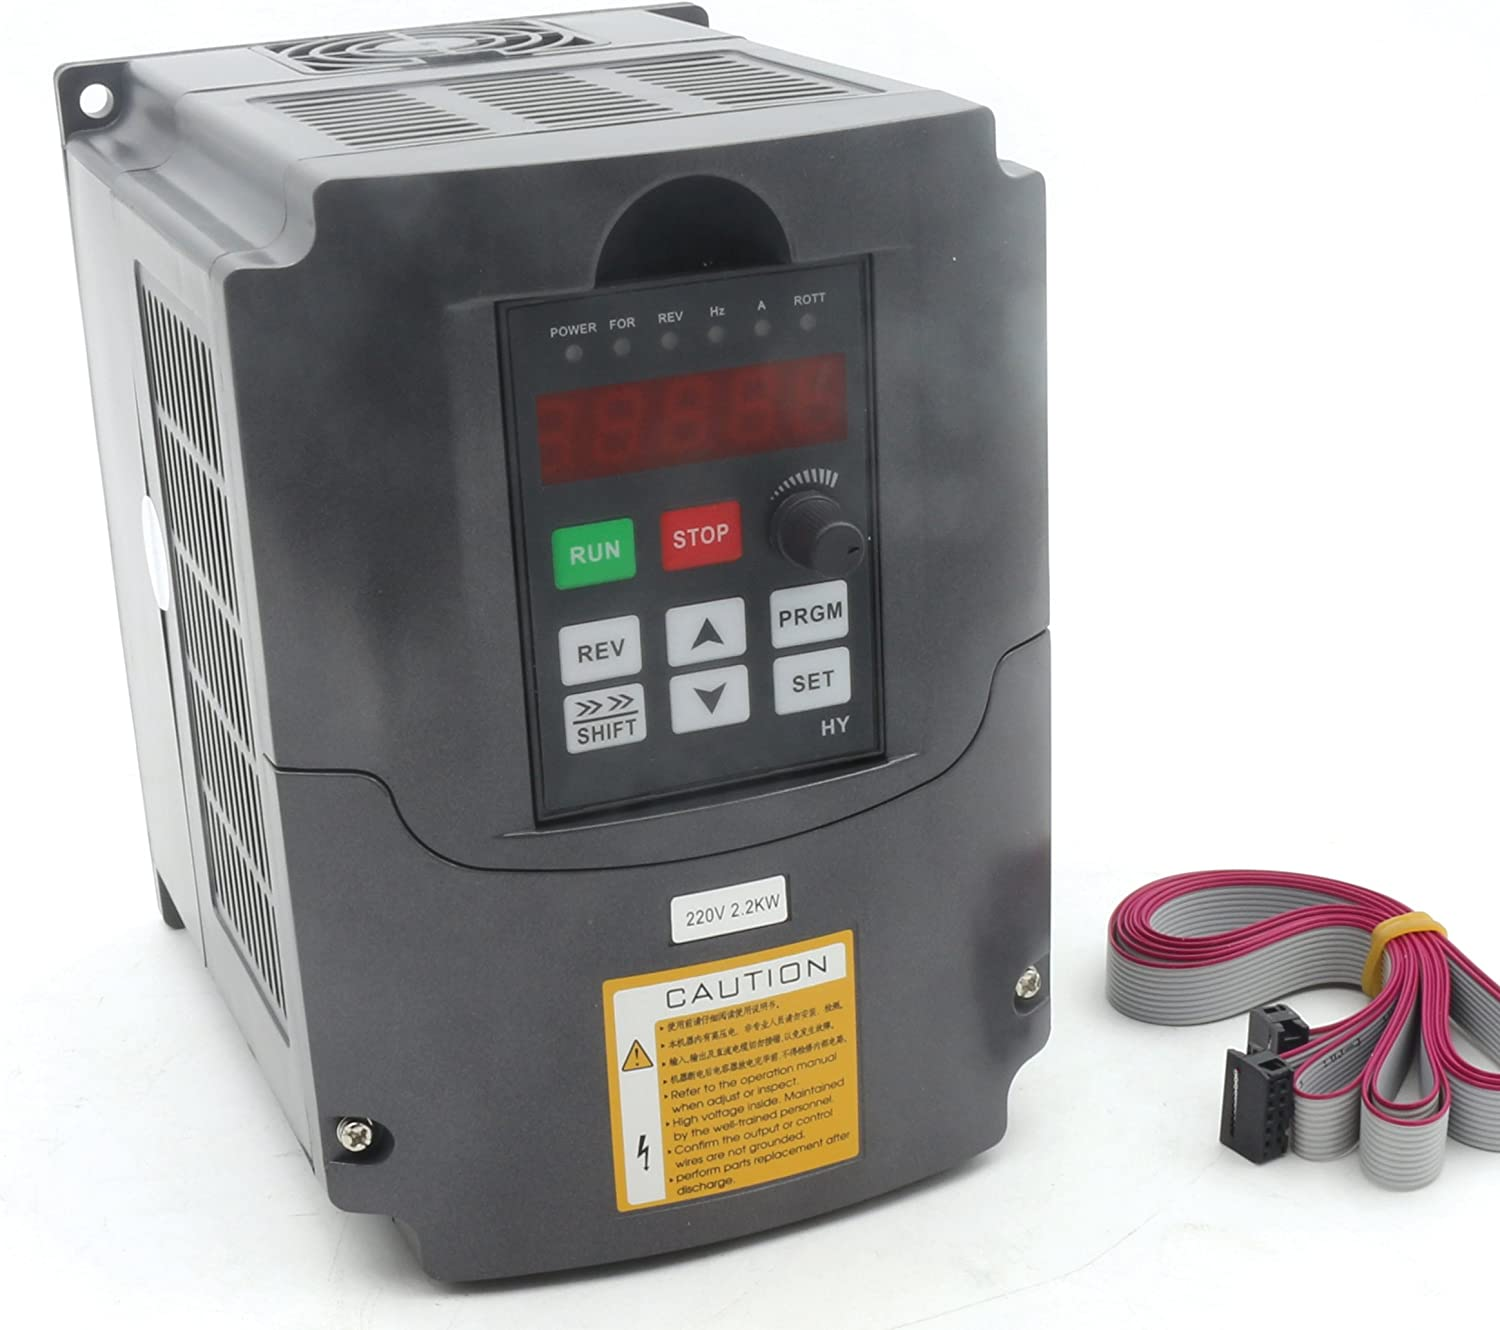 2.2KW 220V VFD CNC Spindle Motor Speed Control Variable Frequency Drive 1HP or 3HP Input 3HP Frequency Inverter